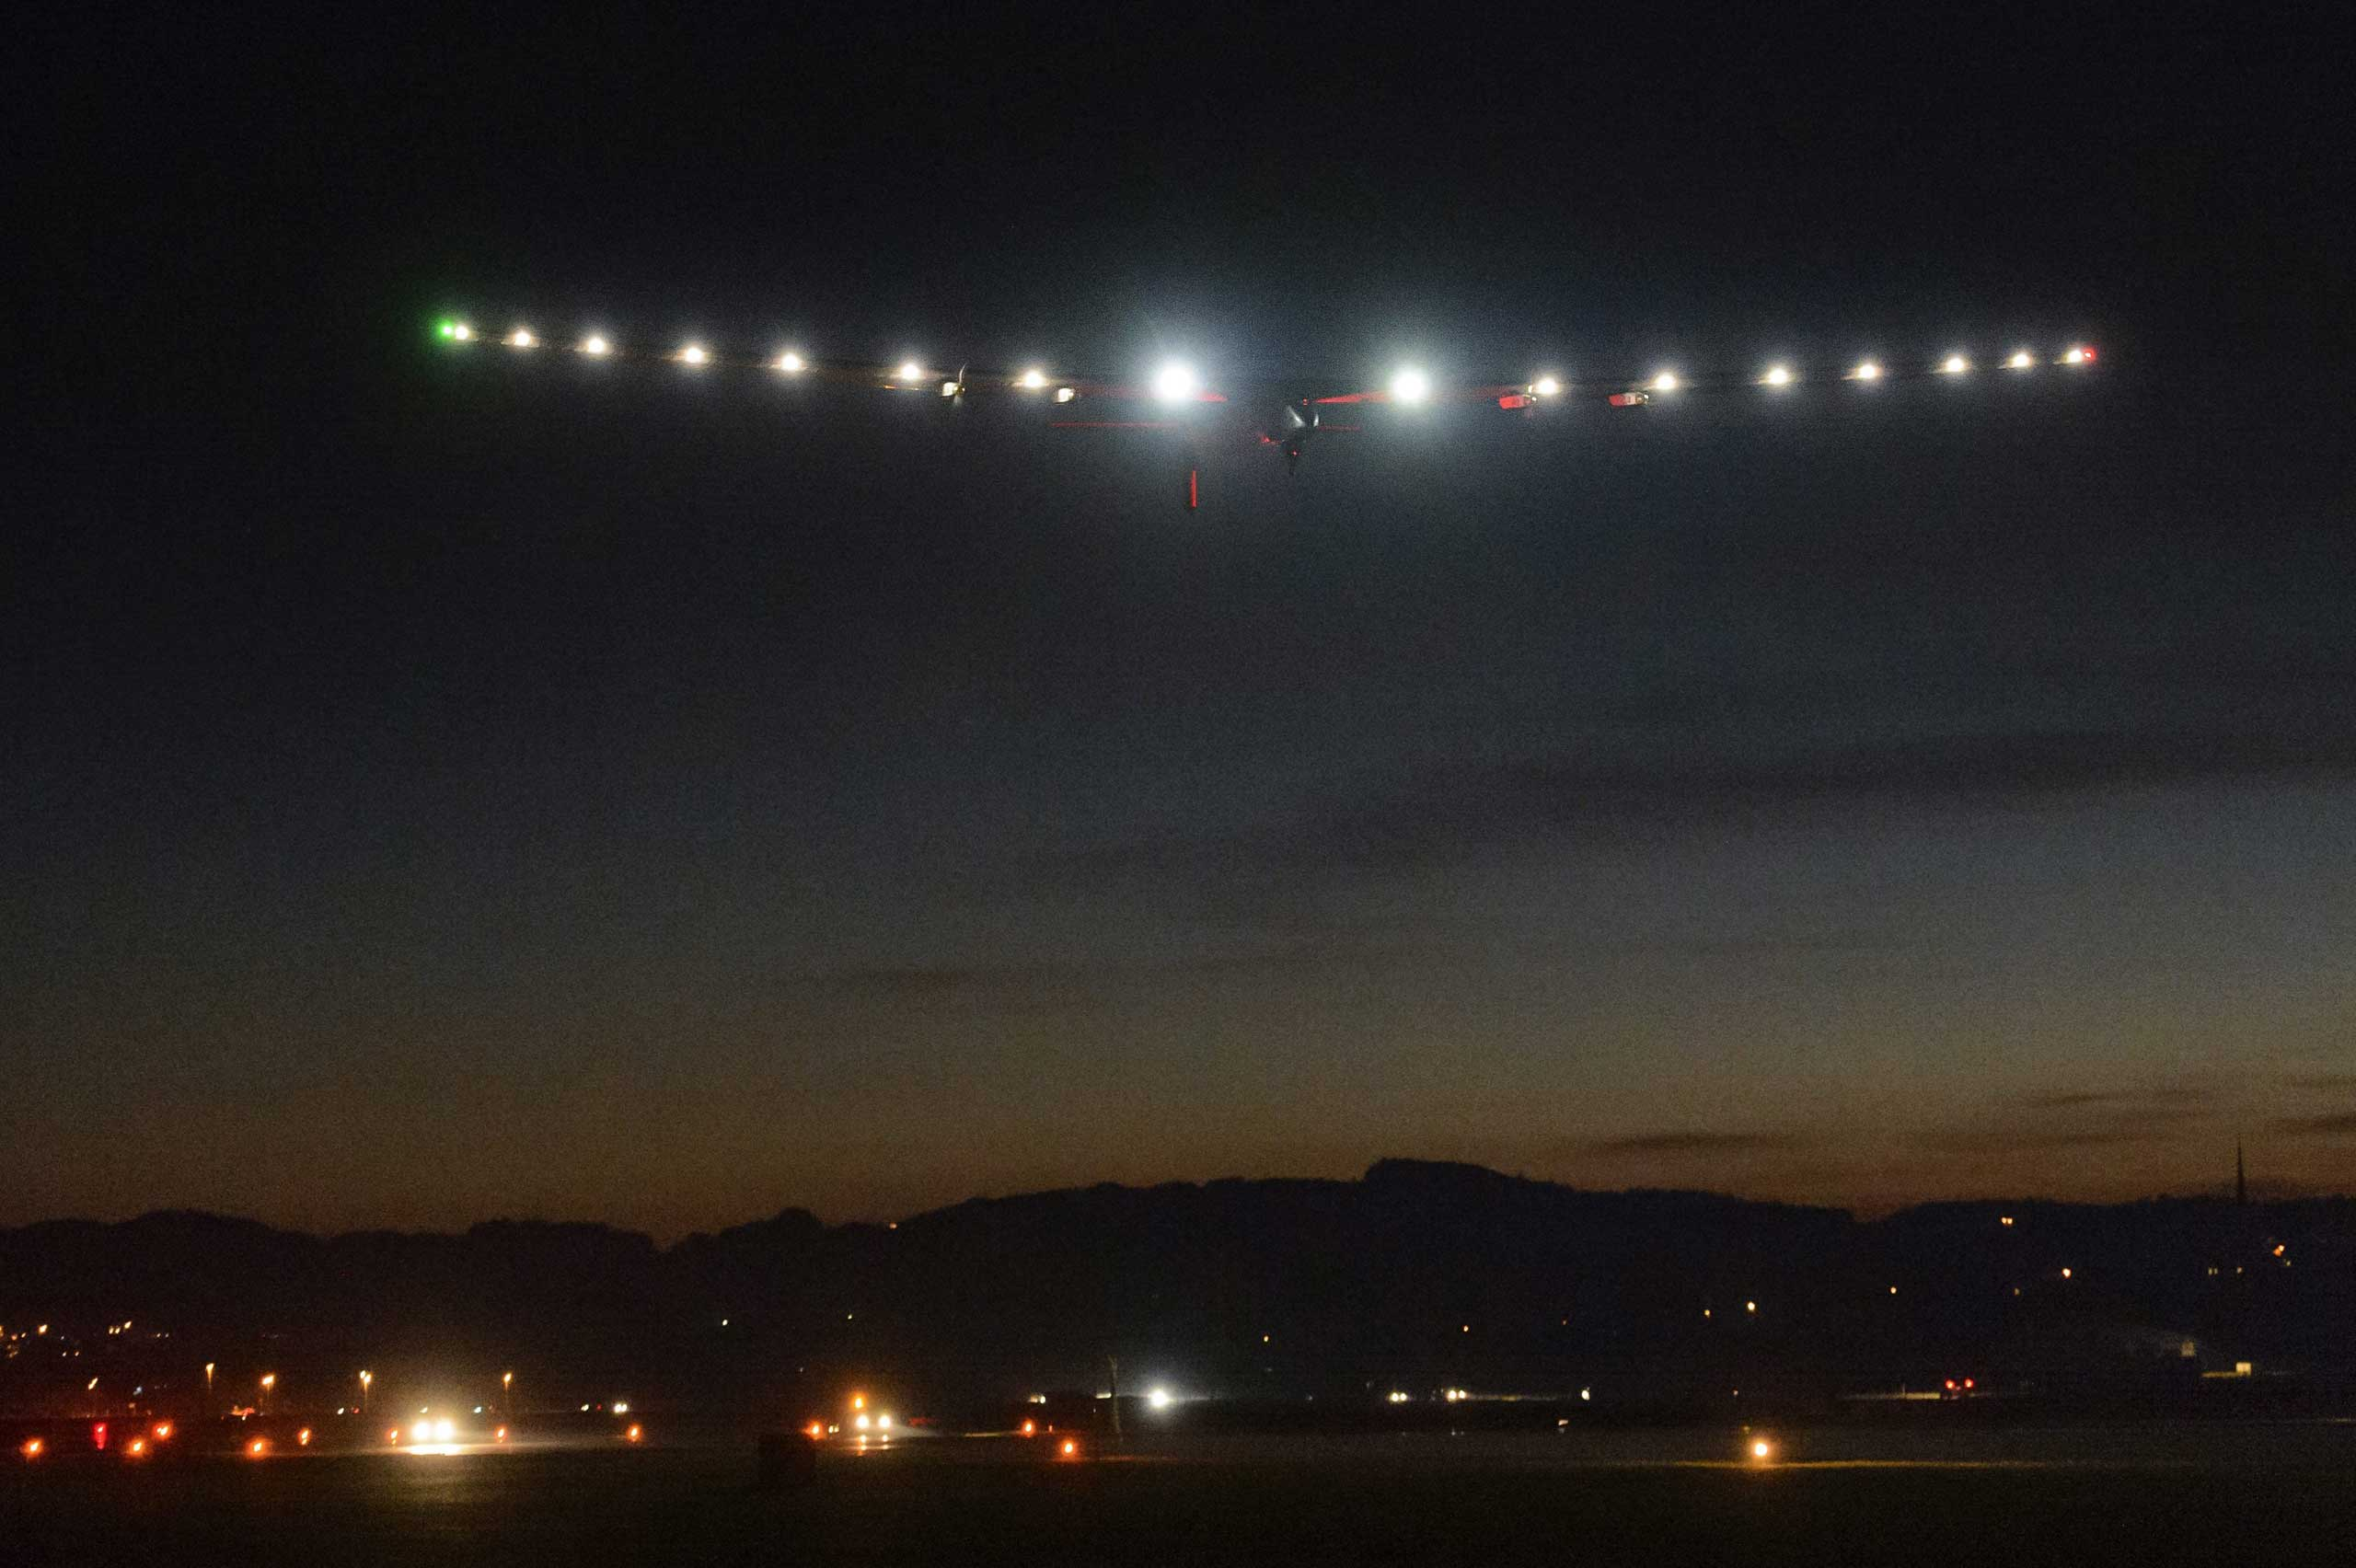 Oct. 30, 2014. The new experimental aircraft, Solar Impulse 2 HB-SIB, flies at night during a test flight with Solar Impulse's Chief Executive Officer and pilot Andre Borschberg at the airbase in Payerne, Switzerland.